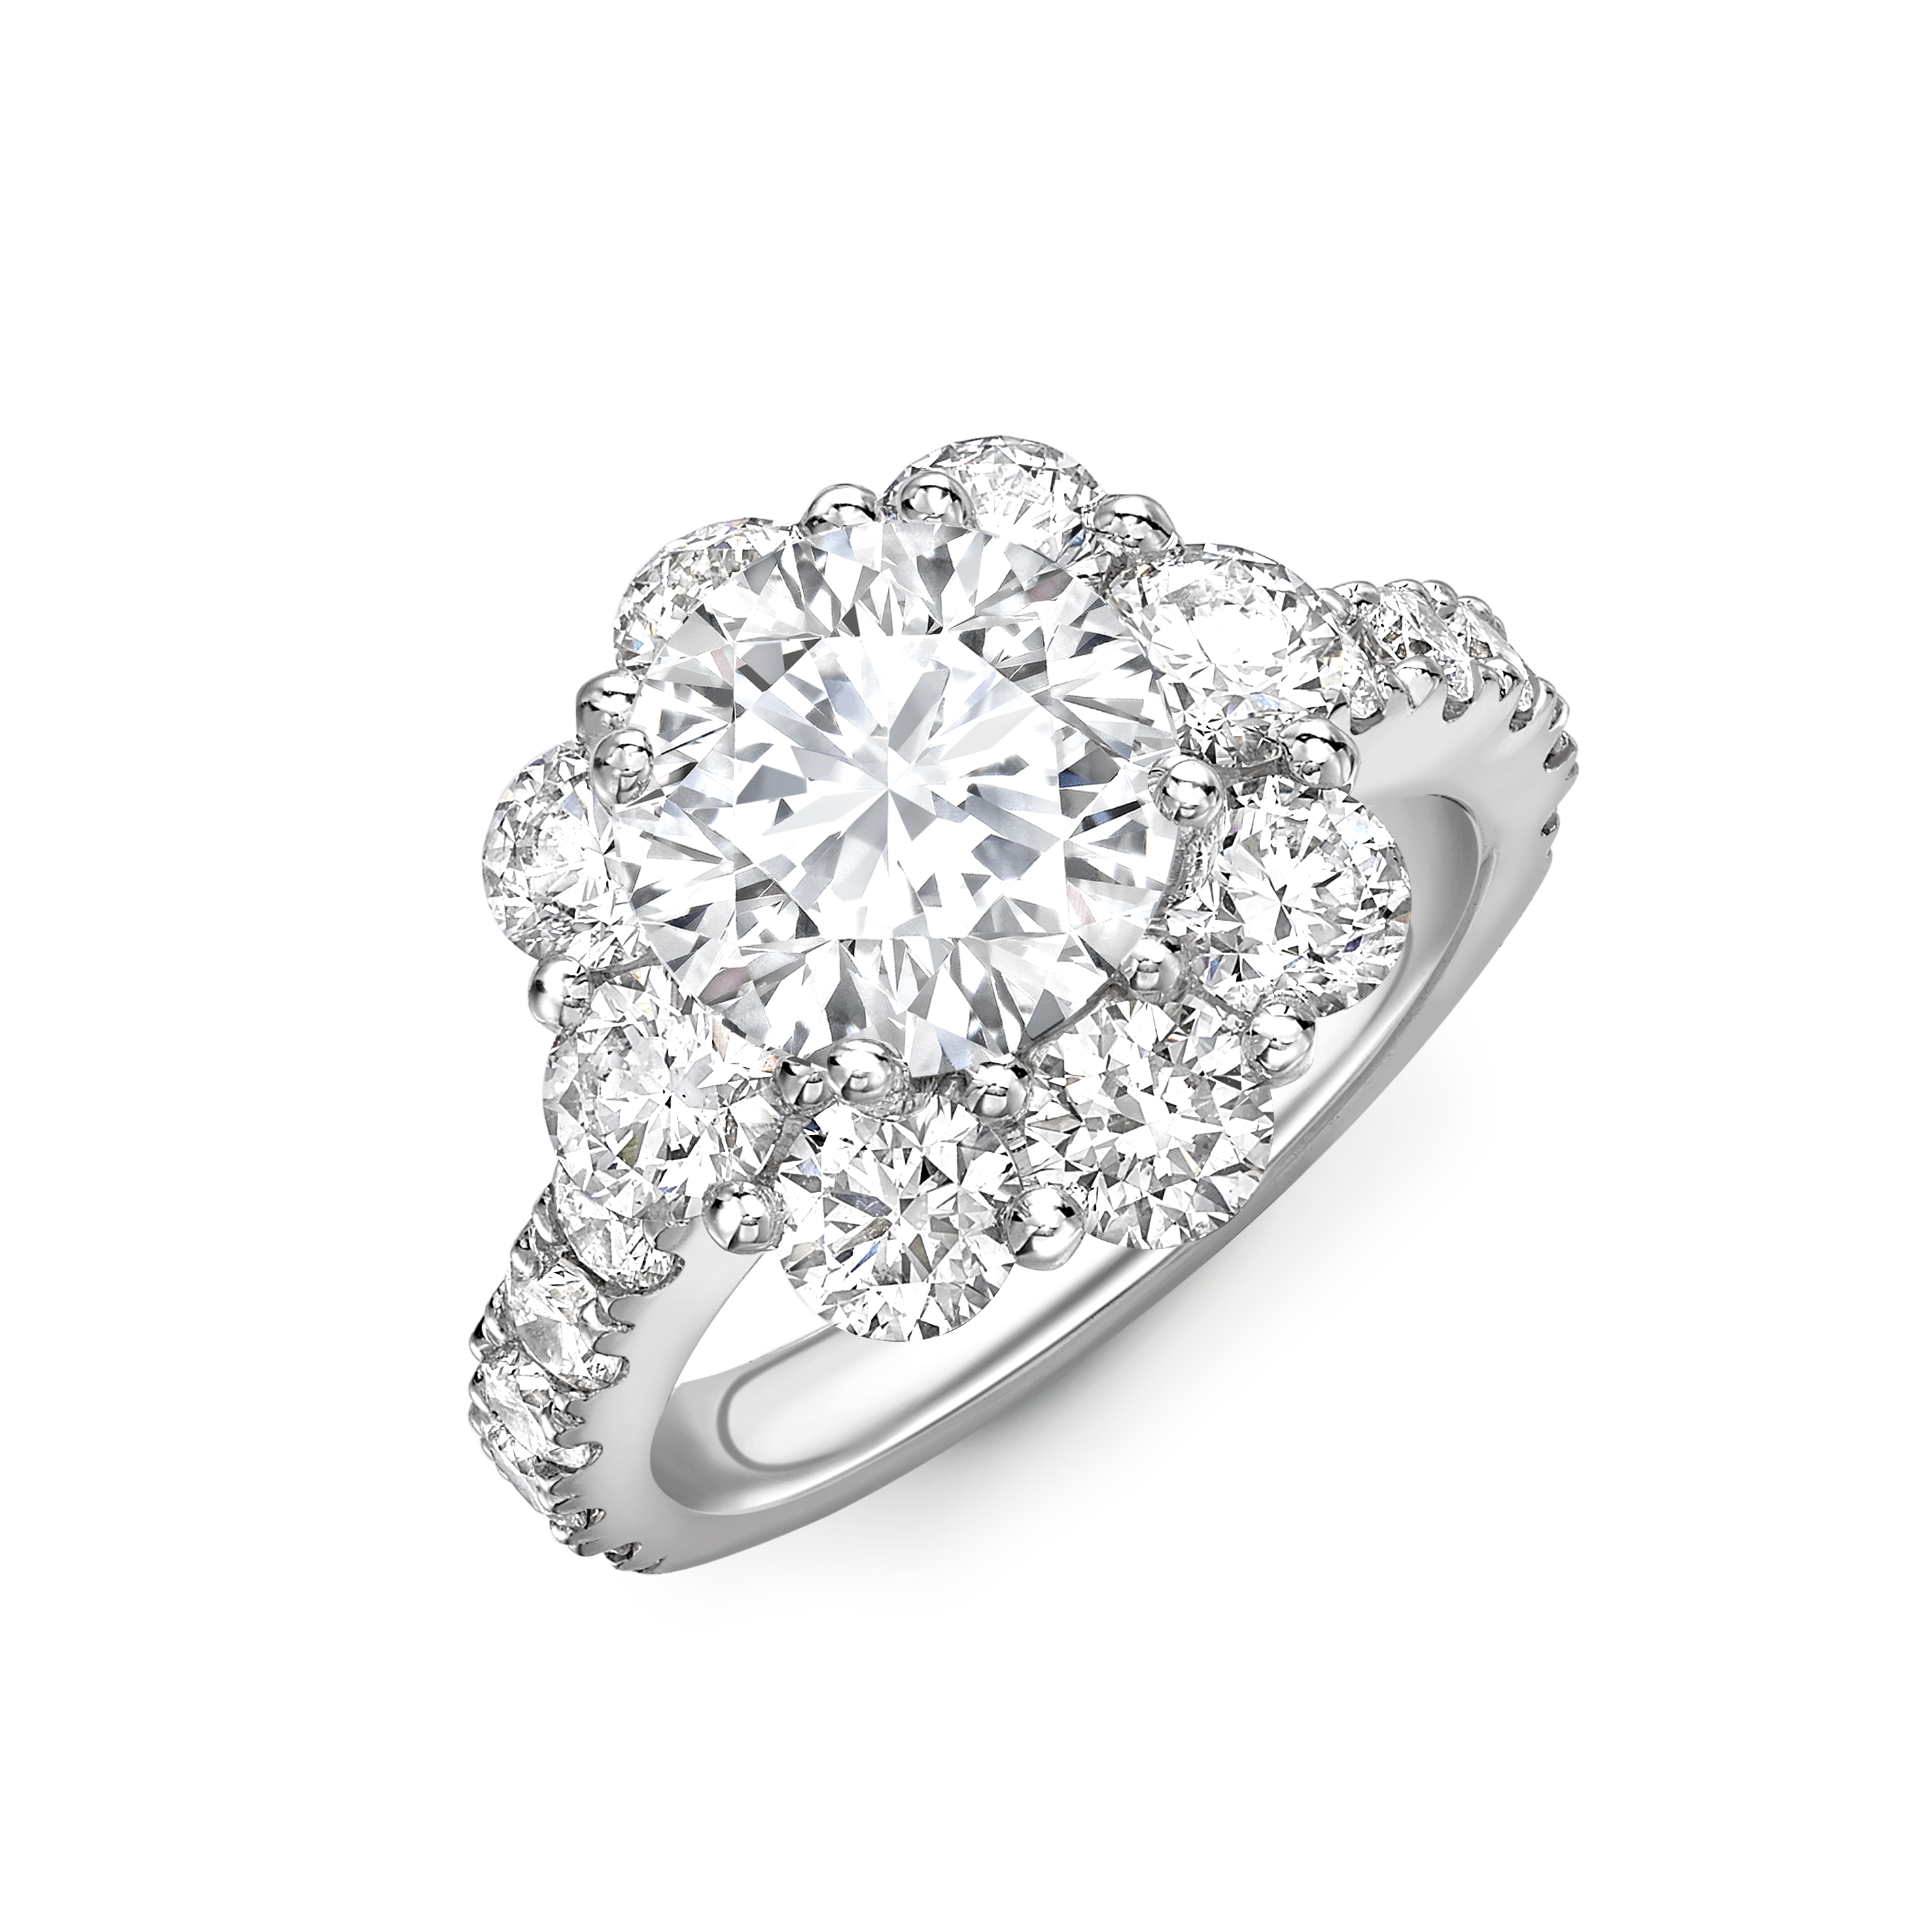 4 Prong Setting Round Shape Exclusive Luxurious Halo Diamond Engagement Rings